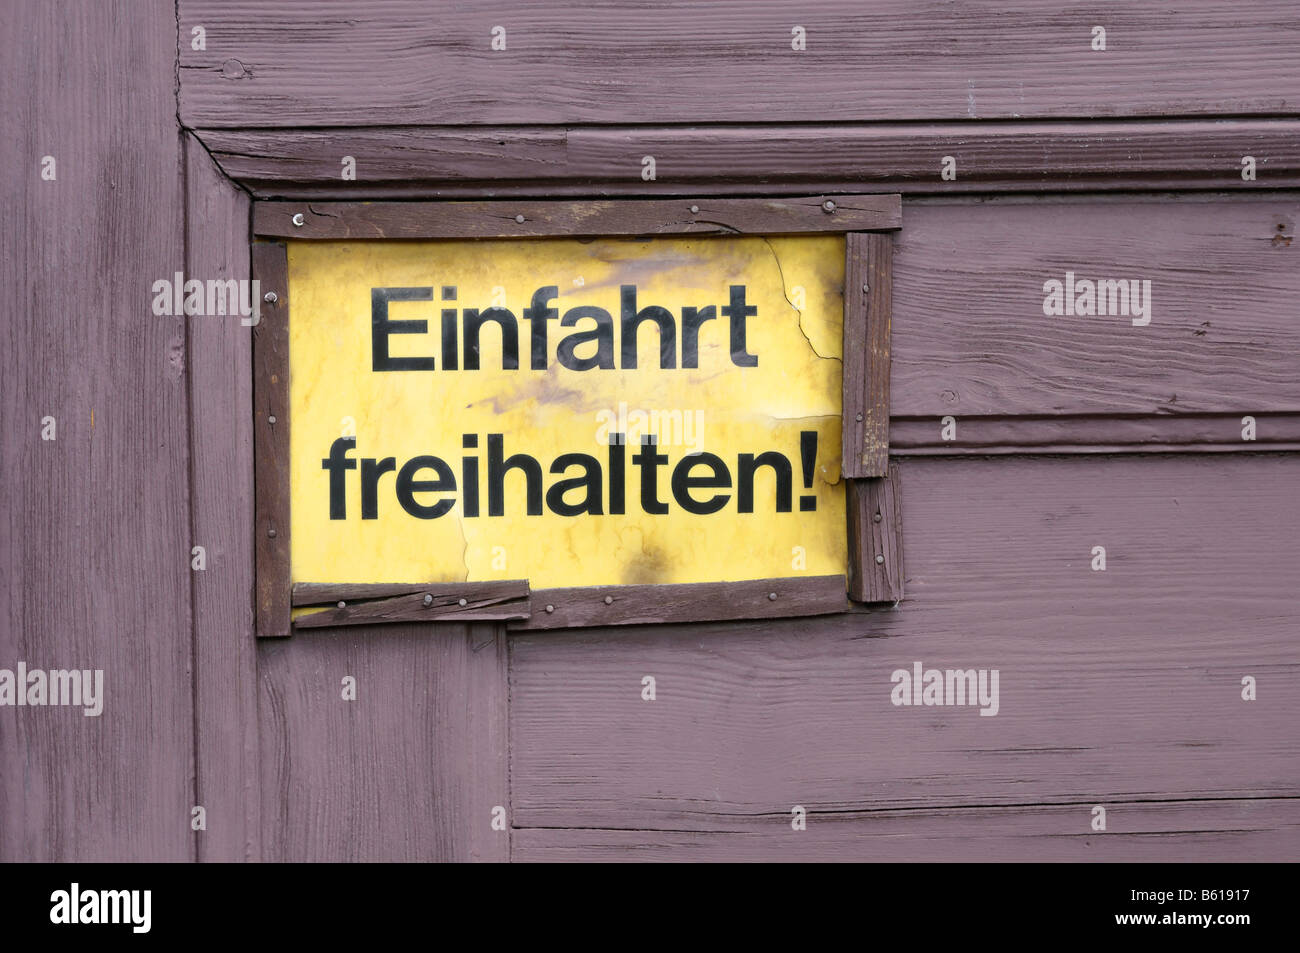 Old yellow sign on a wooden door: Einfahrt freihalten!, Keep the Entrance Clear! - Stock Image